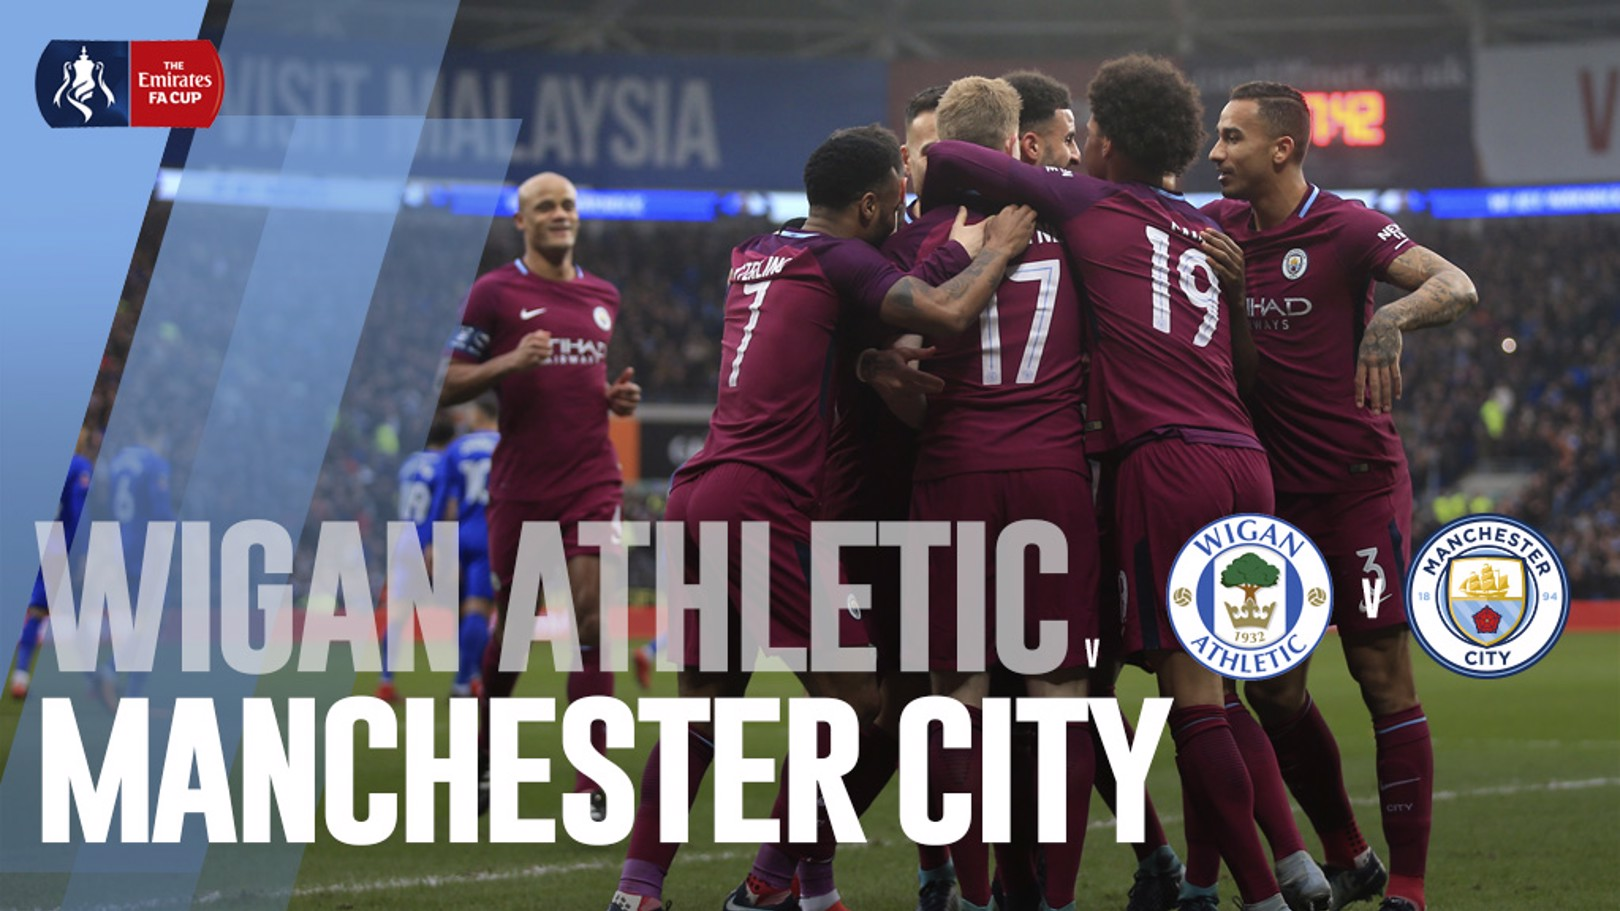 Wigan Athletic - Manchester City.